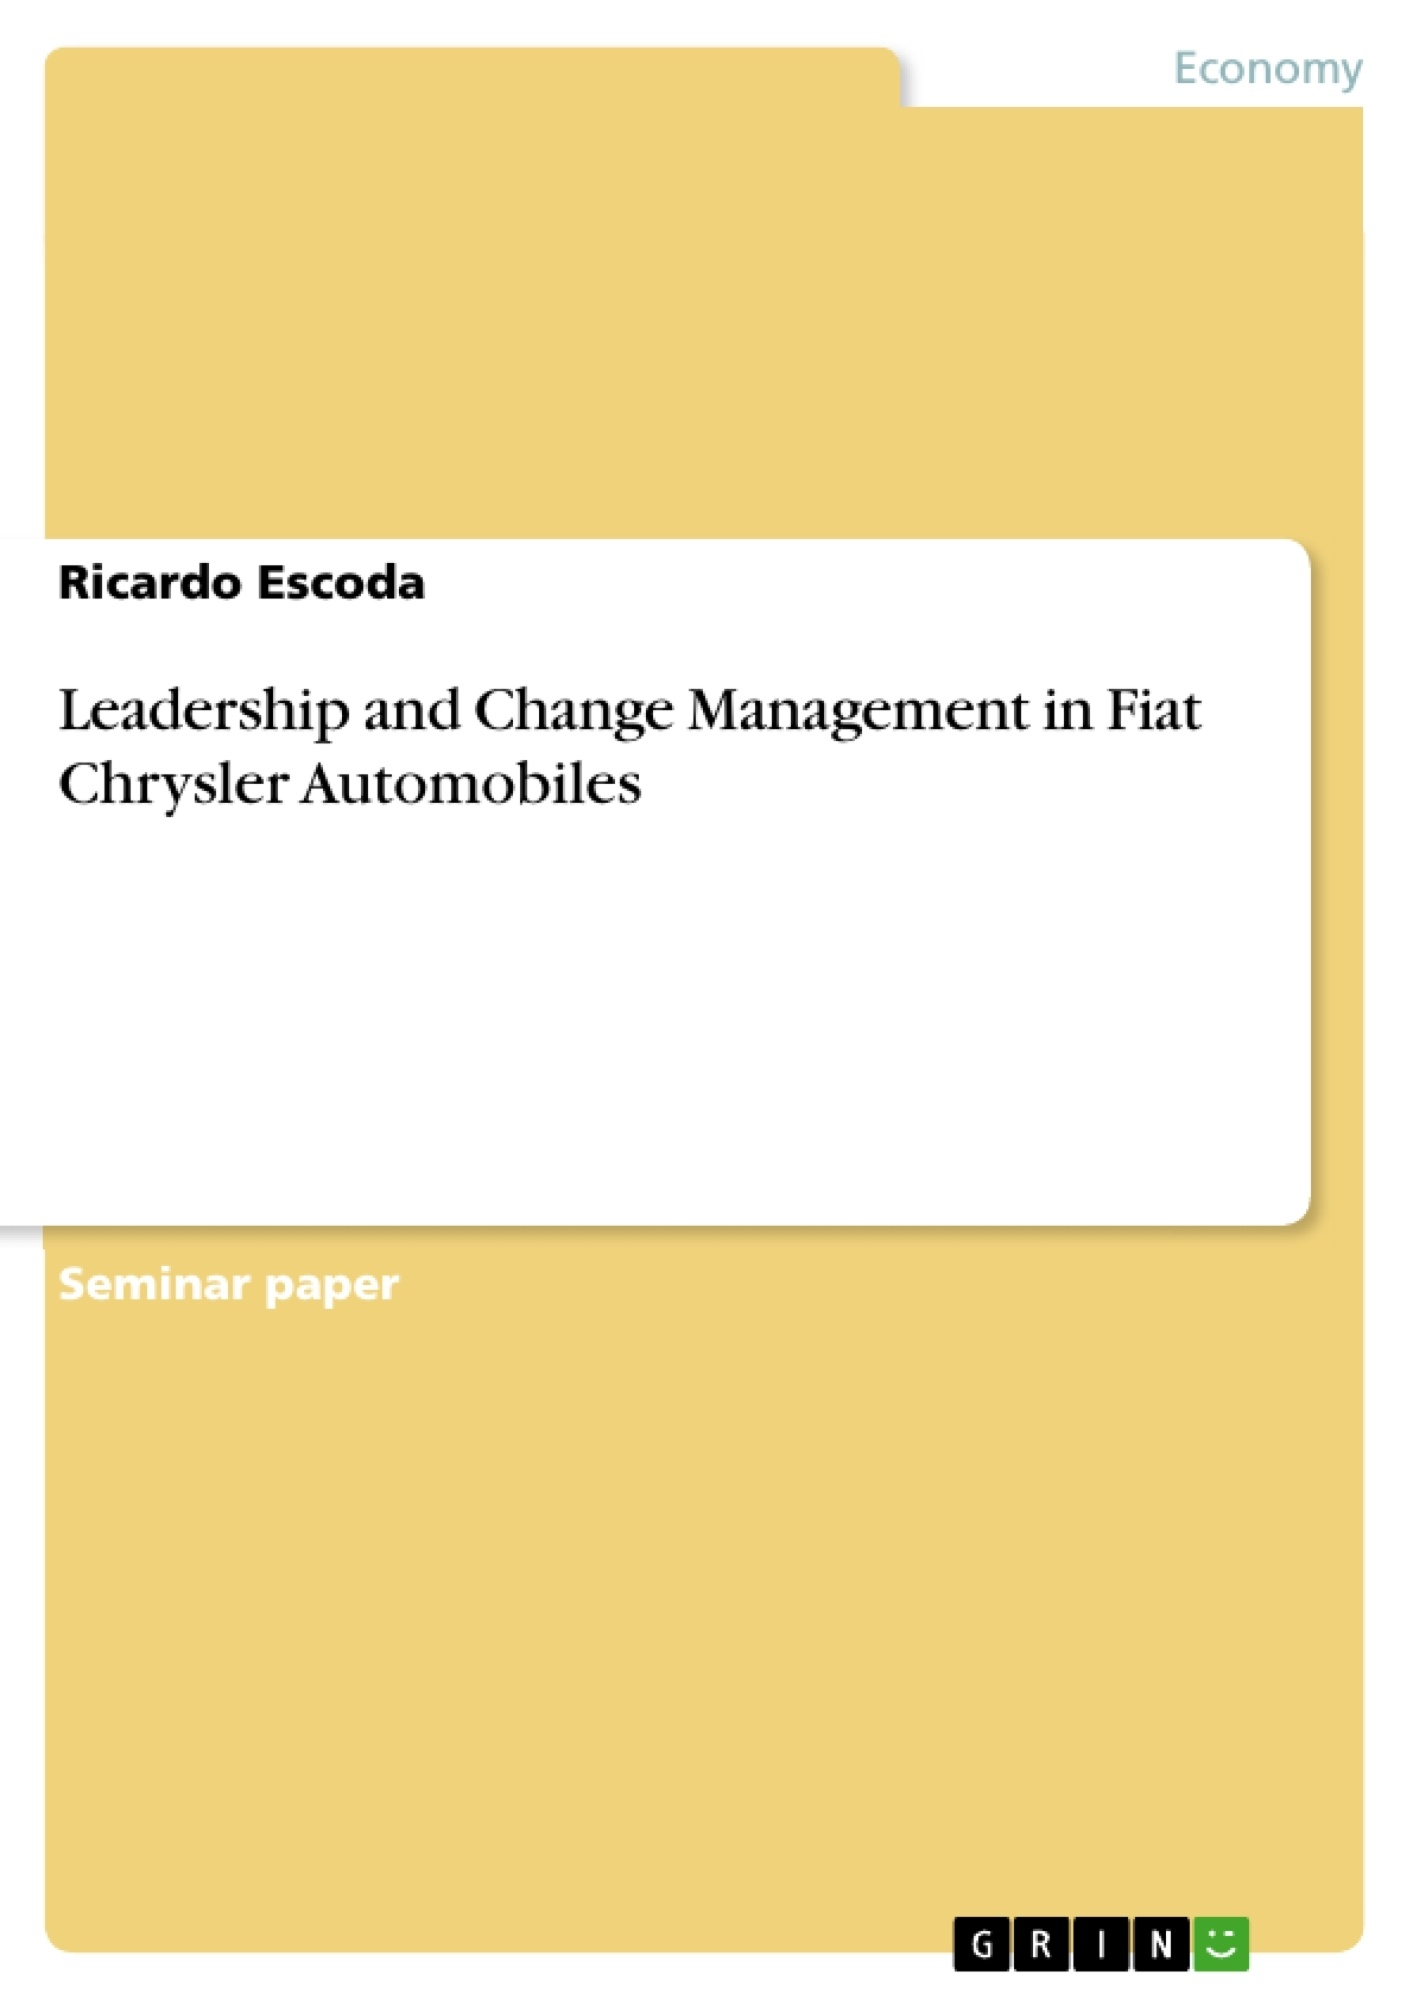 Title: Leadership and Change Management in Fiat Chrysler Automobiles